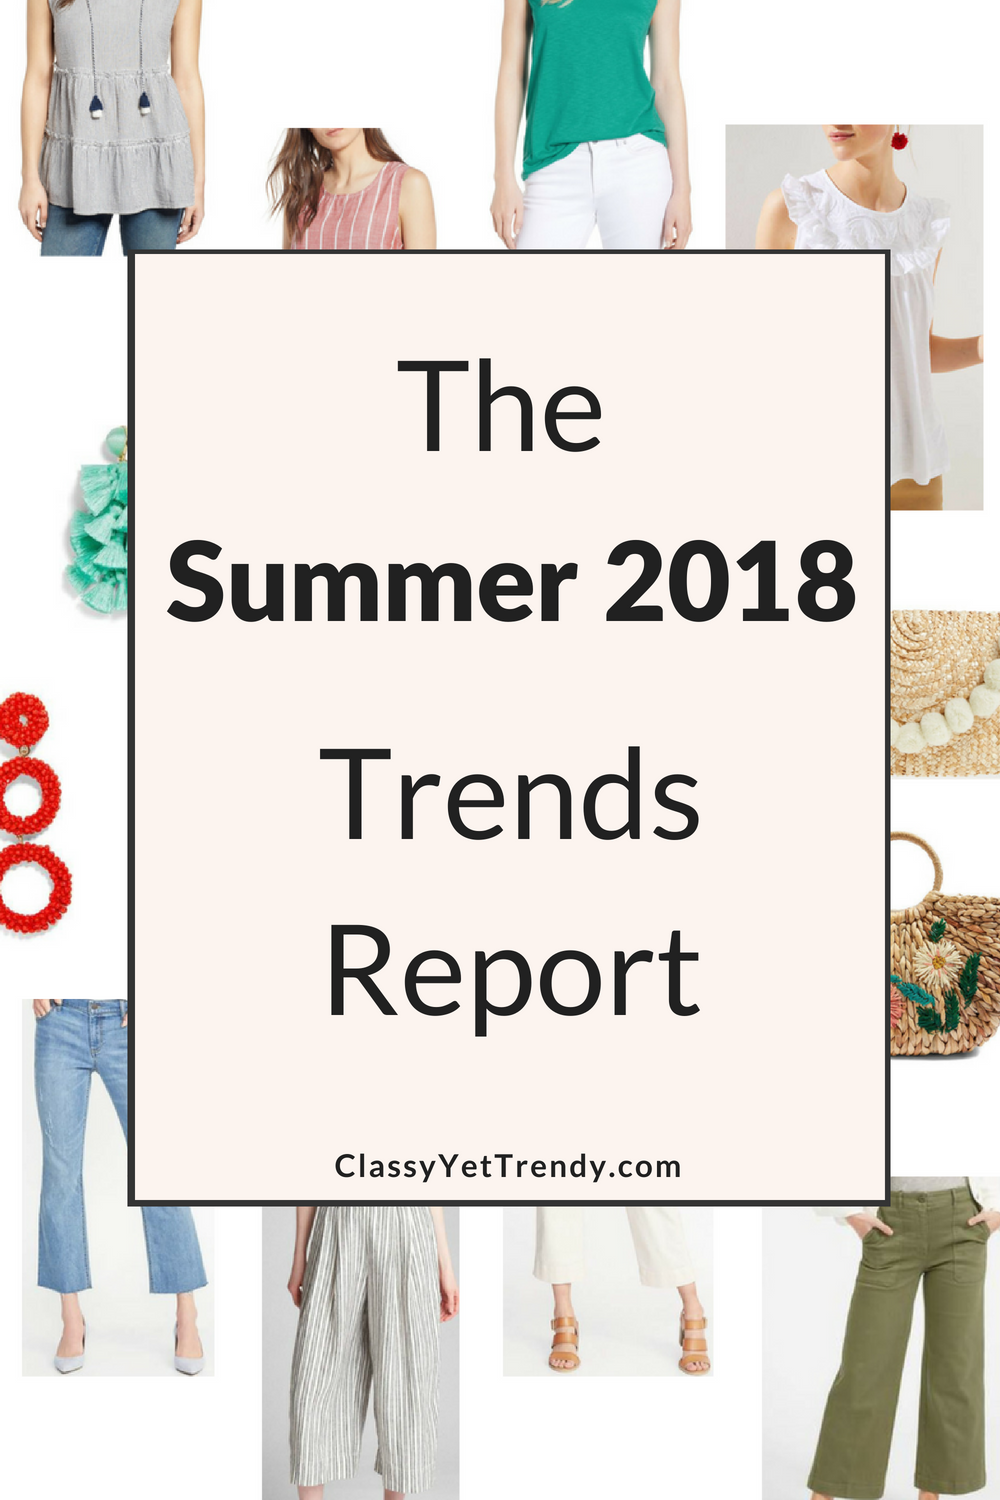 The Summer 2018 Trends Report